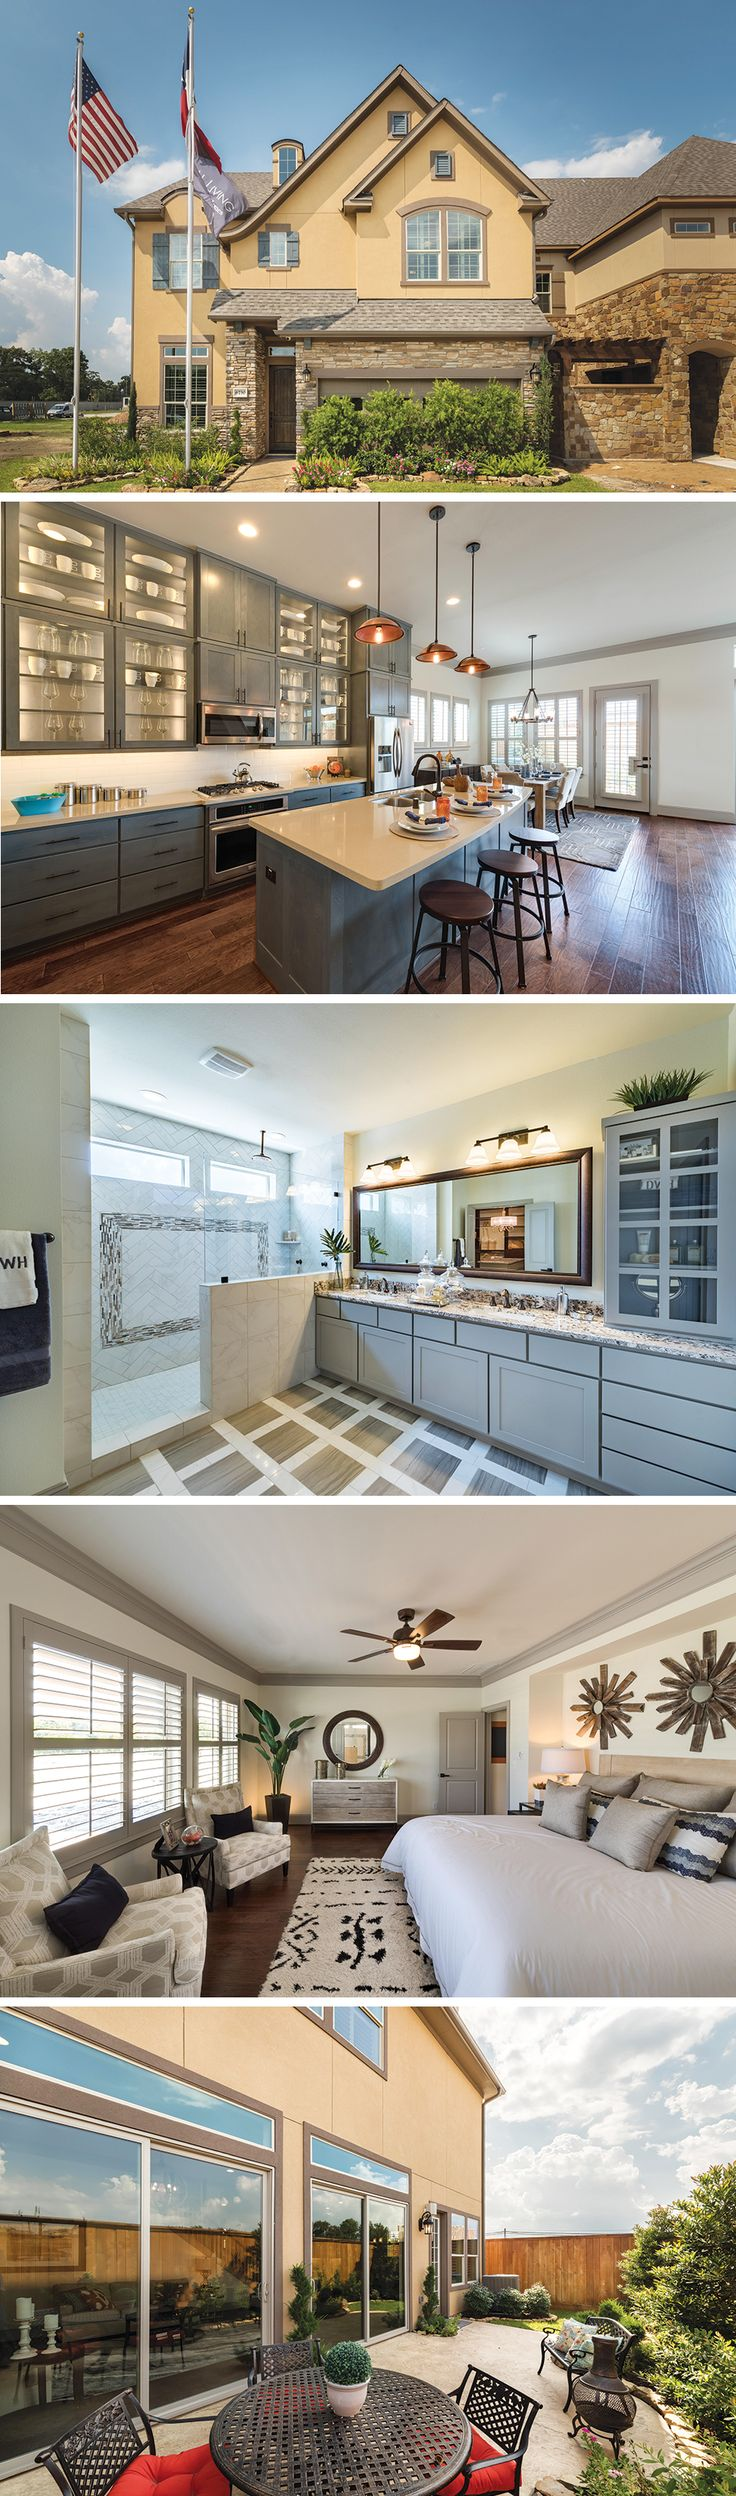 The Wickham by David Weekley Homes in Westview Manor is a floorplan that features wood floors in all shared rooms, an open kitchen and family room layout and an owners retreat with a large bathroom and walk-in closet.